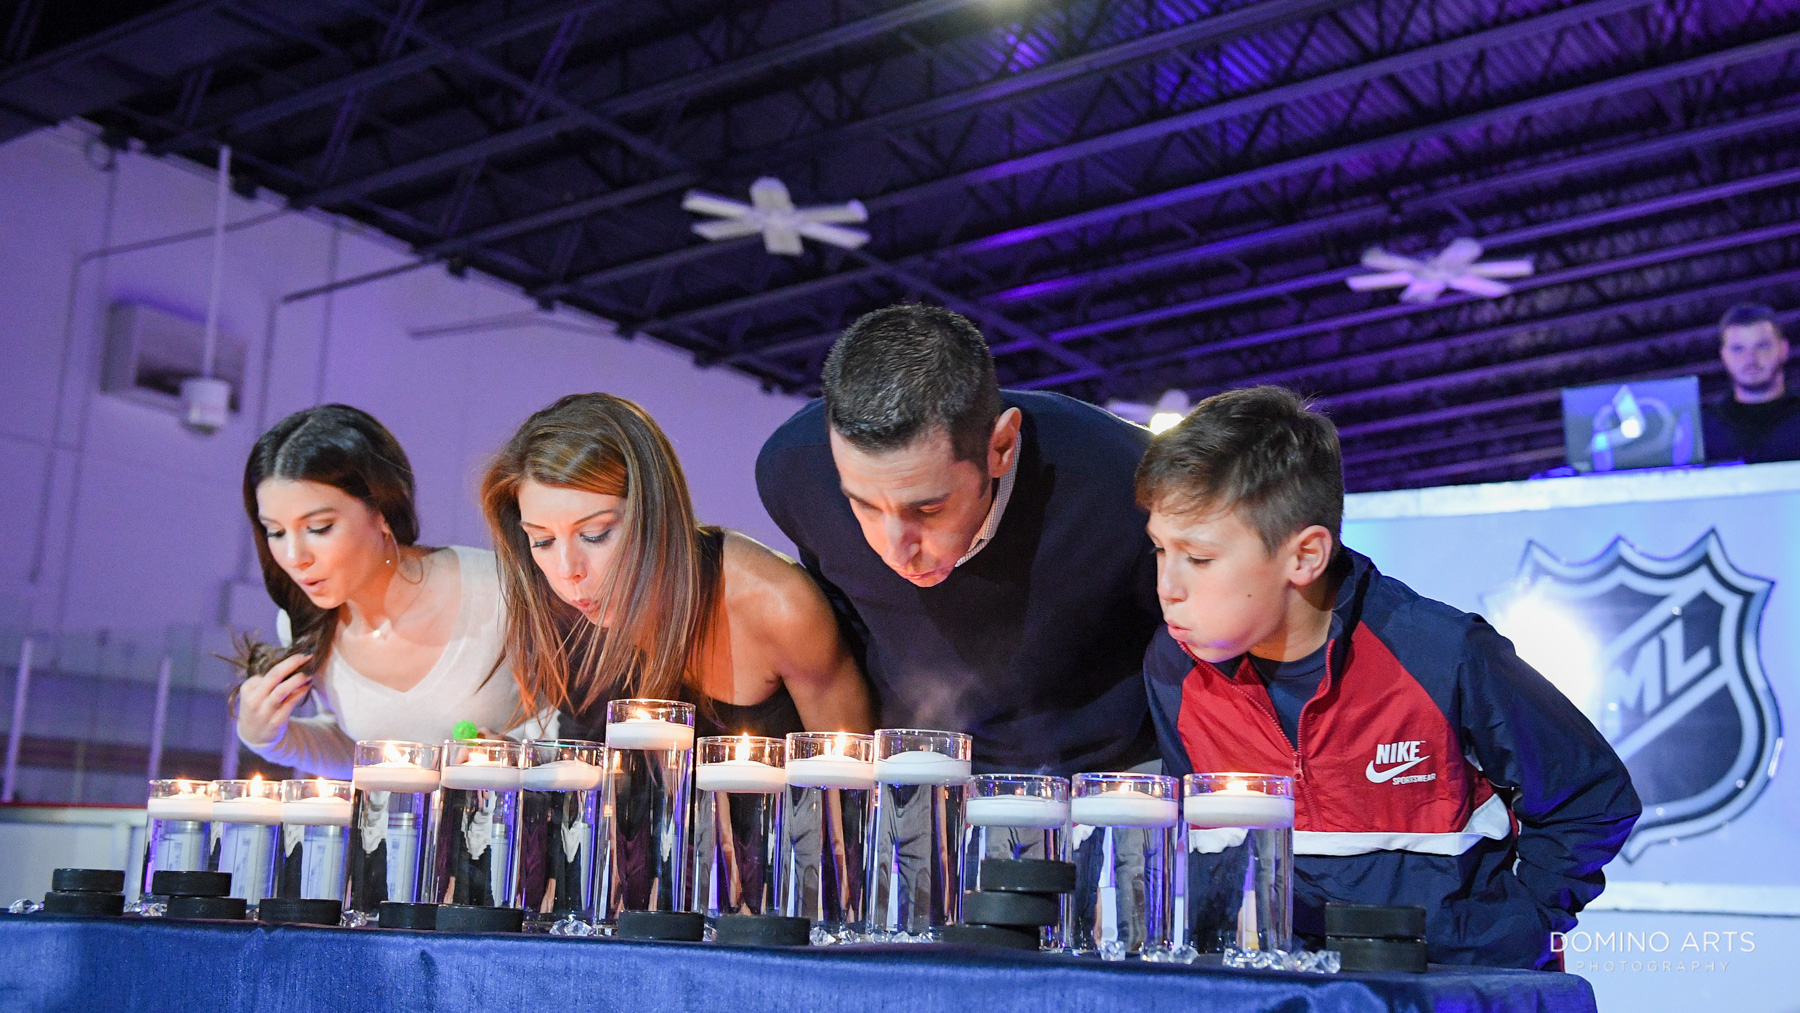 Unique ice skating Mitzvah theme party fun pictures